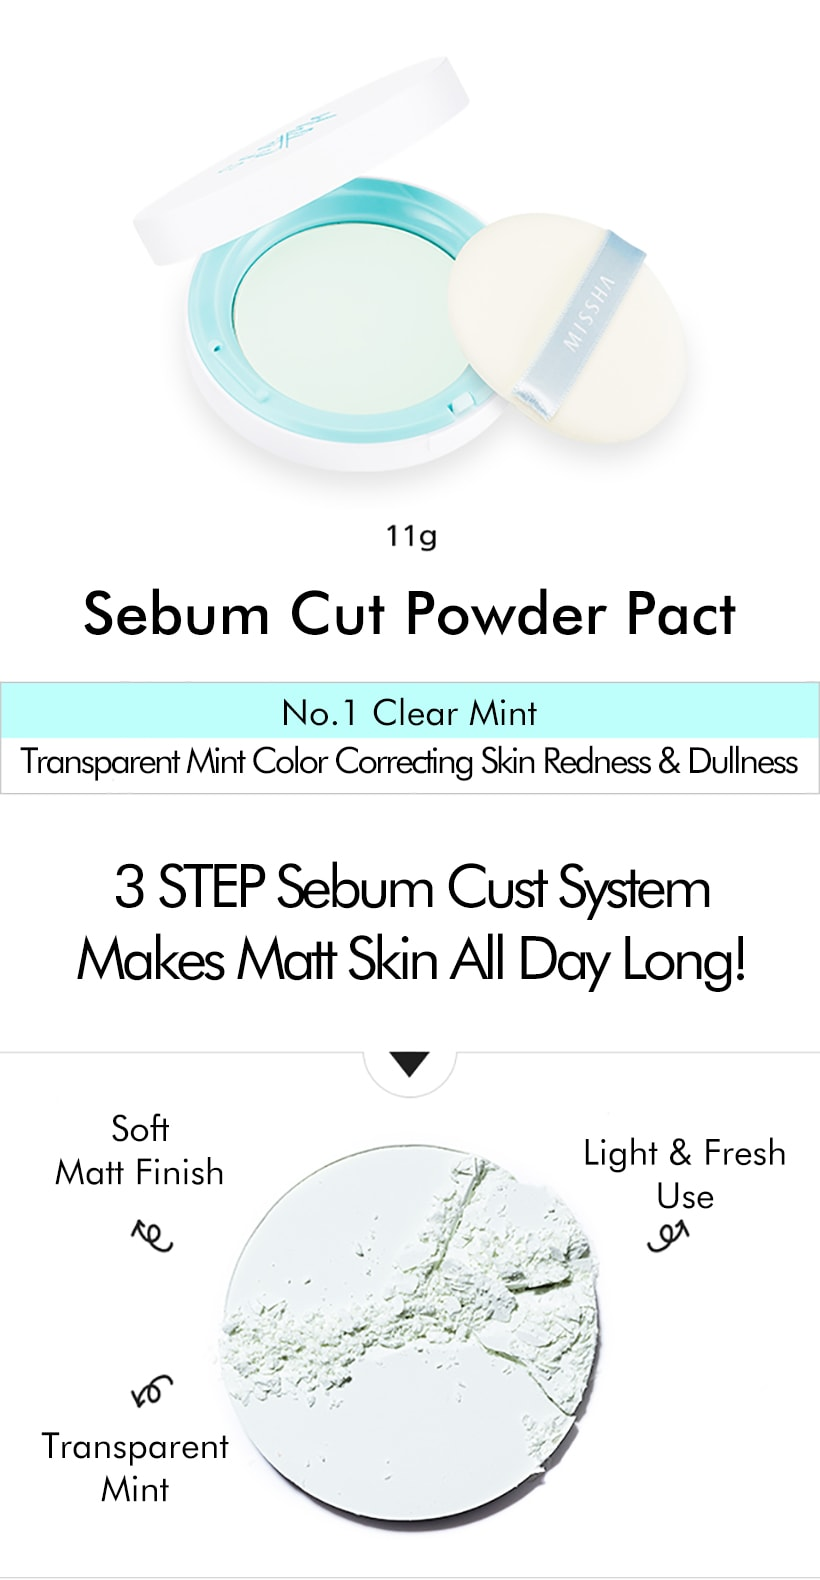 MISSHA Sebum Cut Powder Pact [Clear Mint]